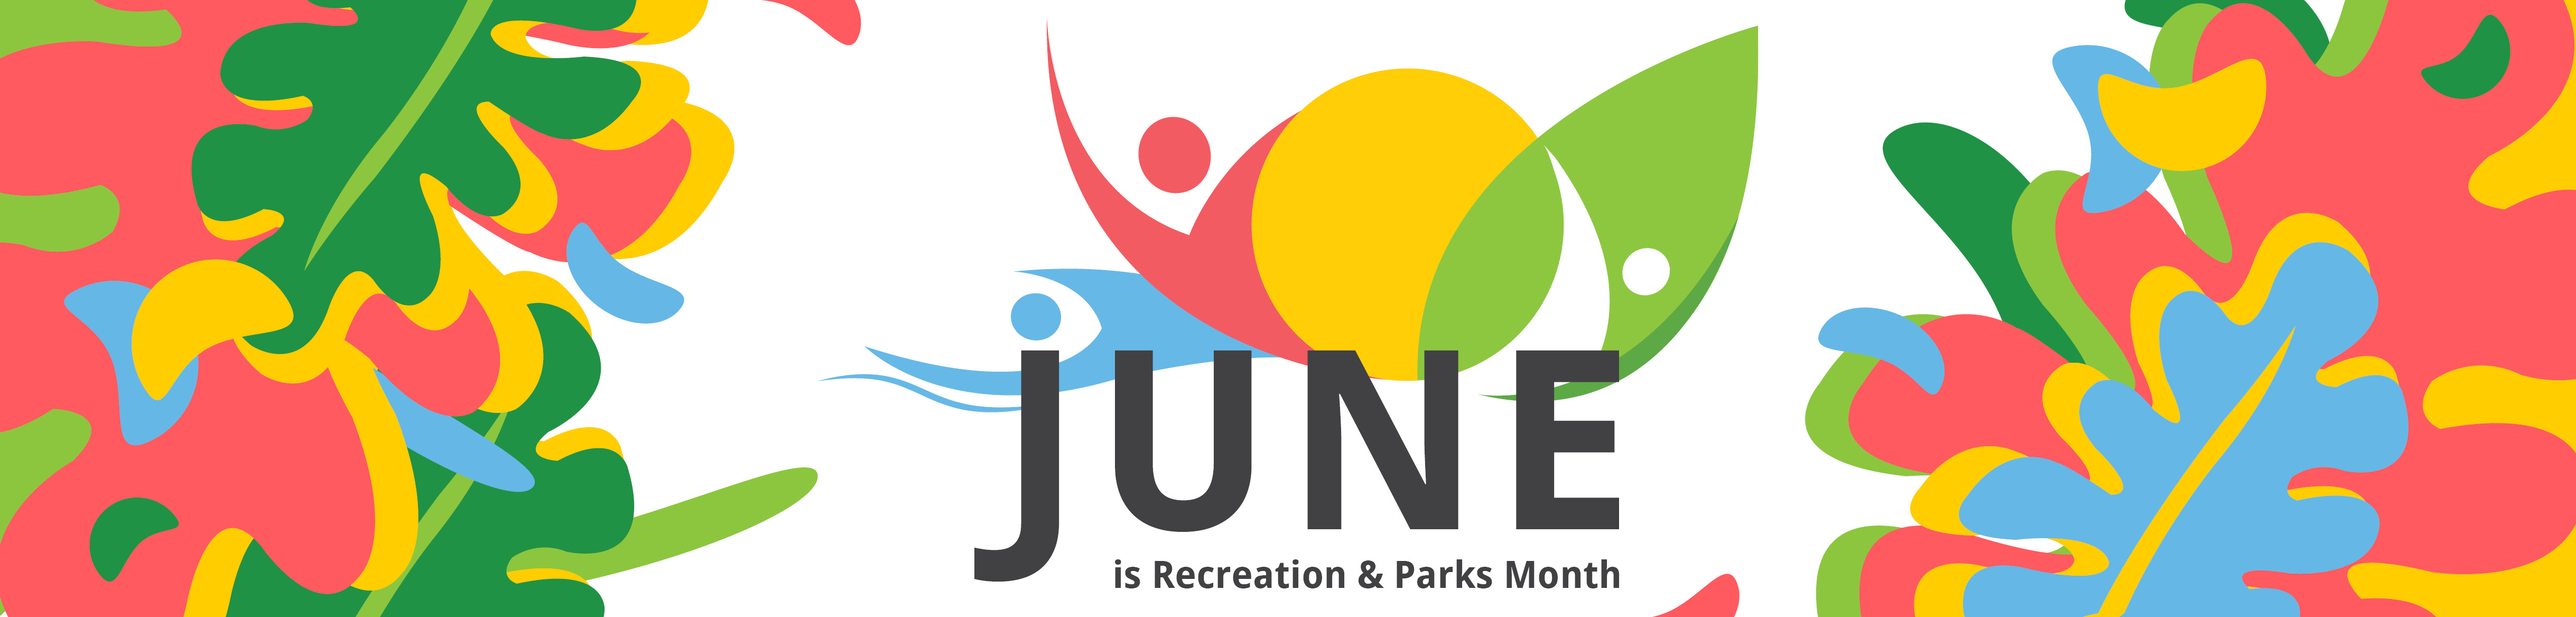 June is Recreation and Parks Month banner